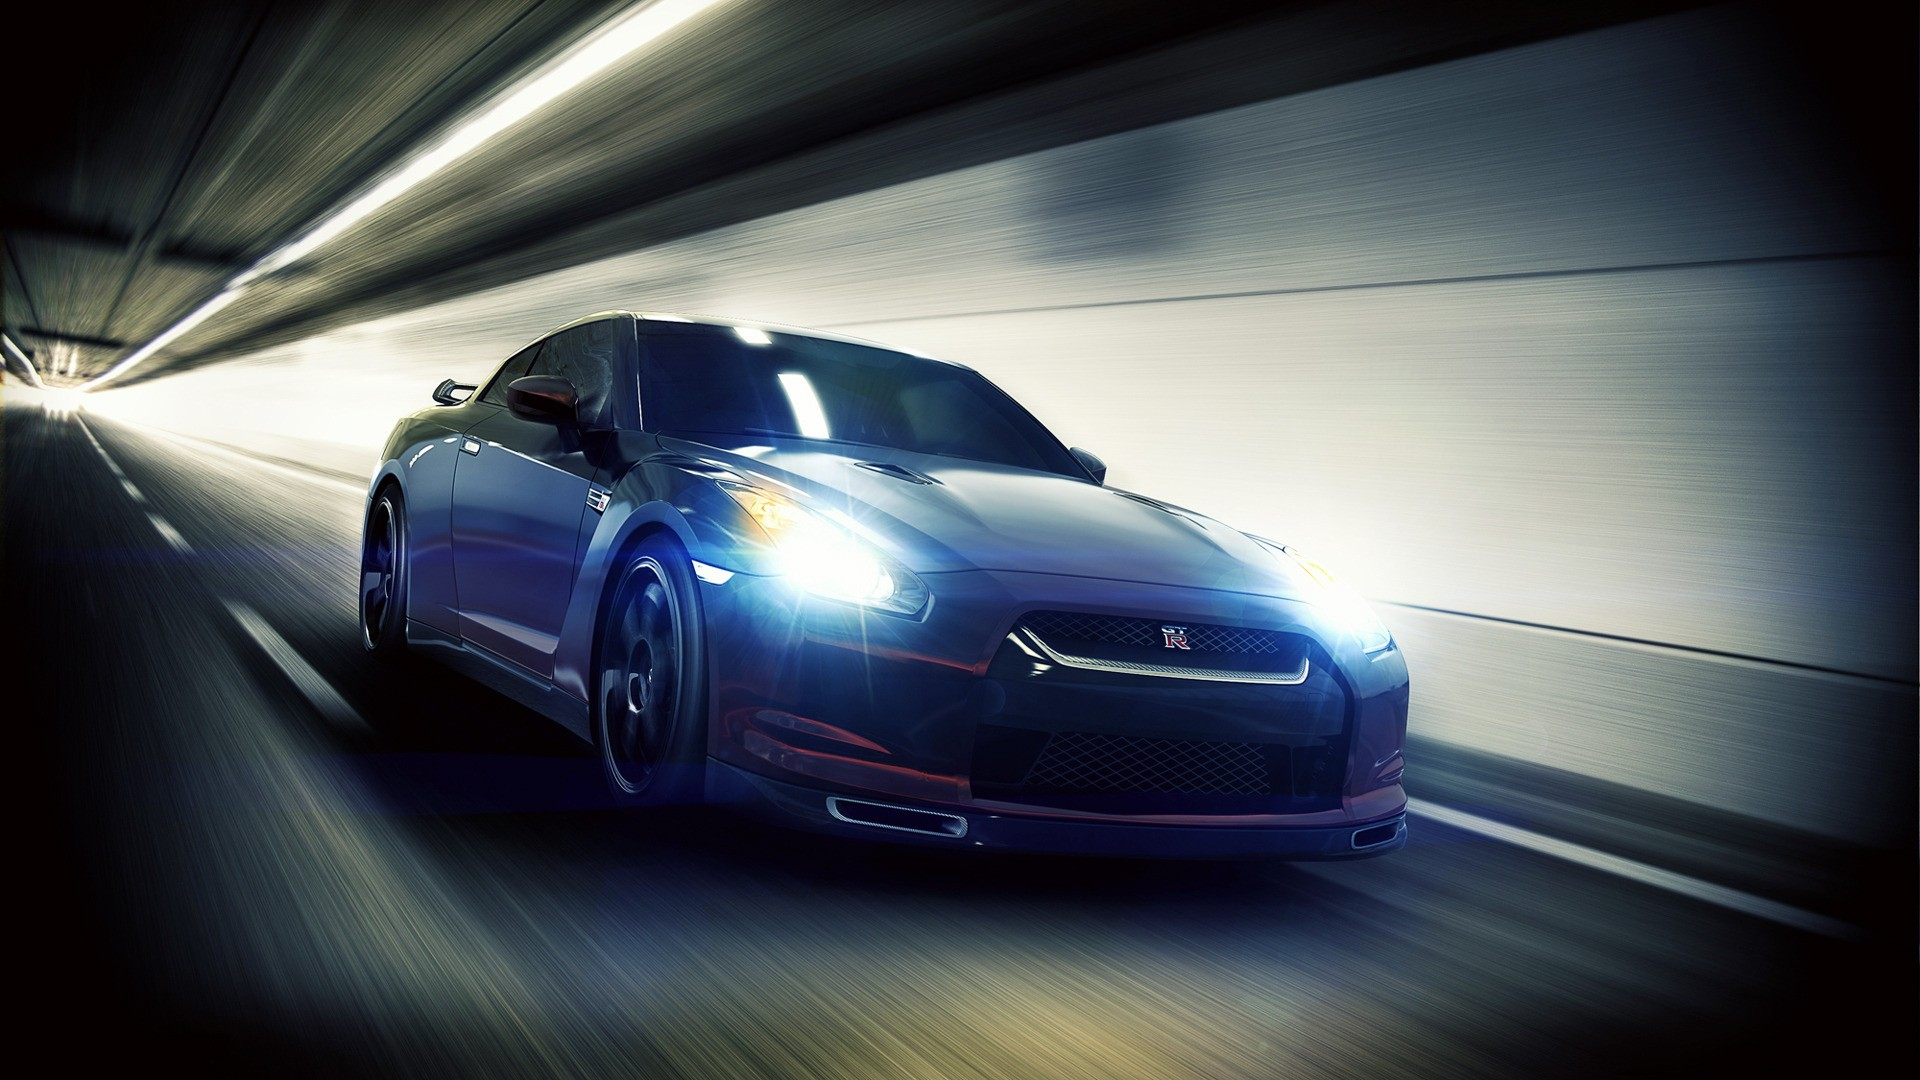 14 best images about <b>240sx</b> on Pinterest